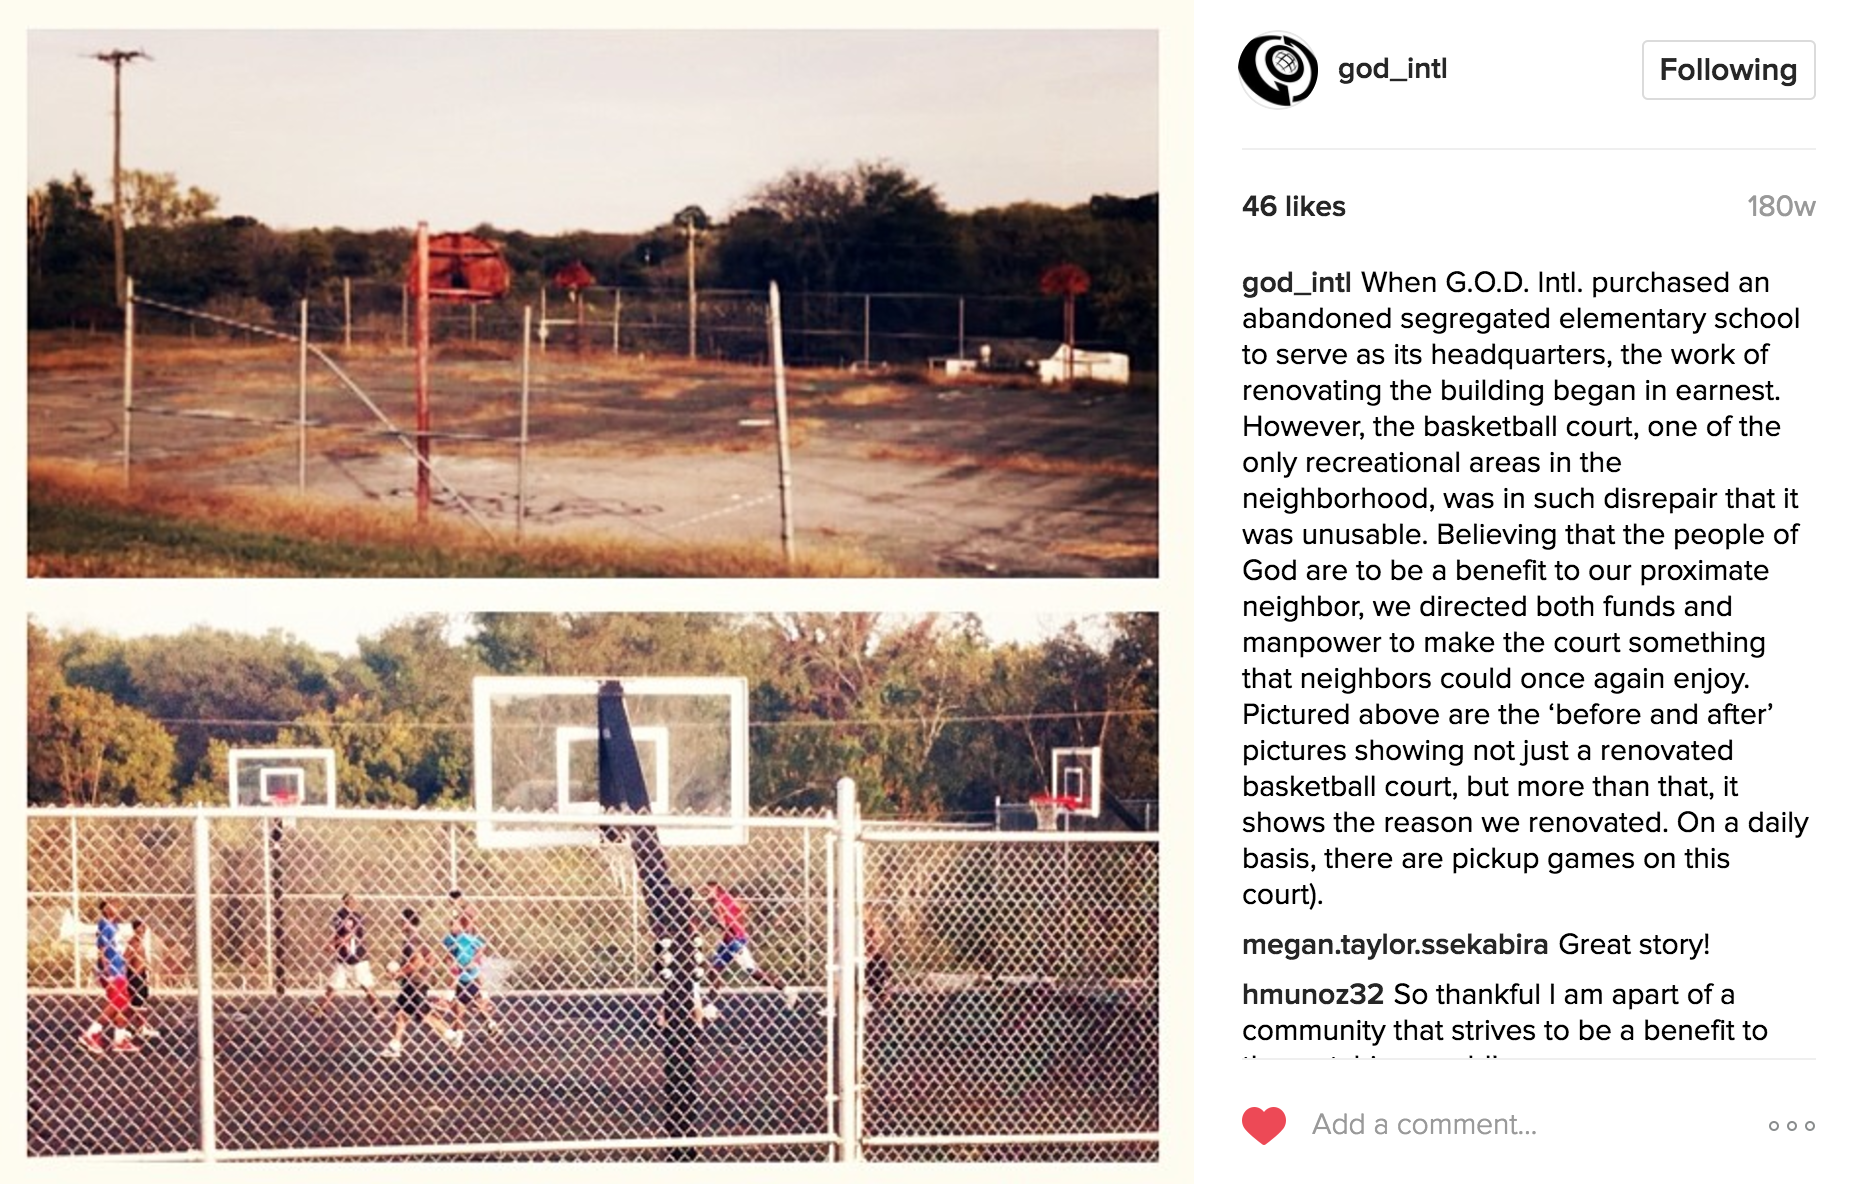 Flashback to one of our first few instagrams about the renovation of the basketball court, showing the before (top) and after (bottom) that occurred within a short period of time after we acquired our property in Hopewell.